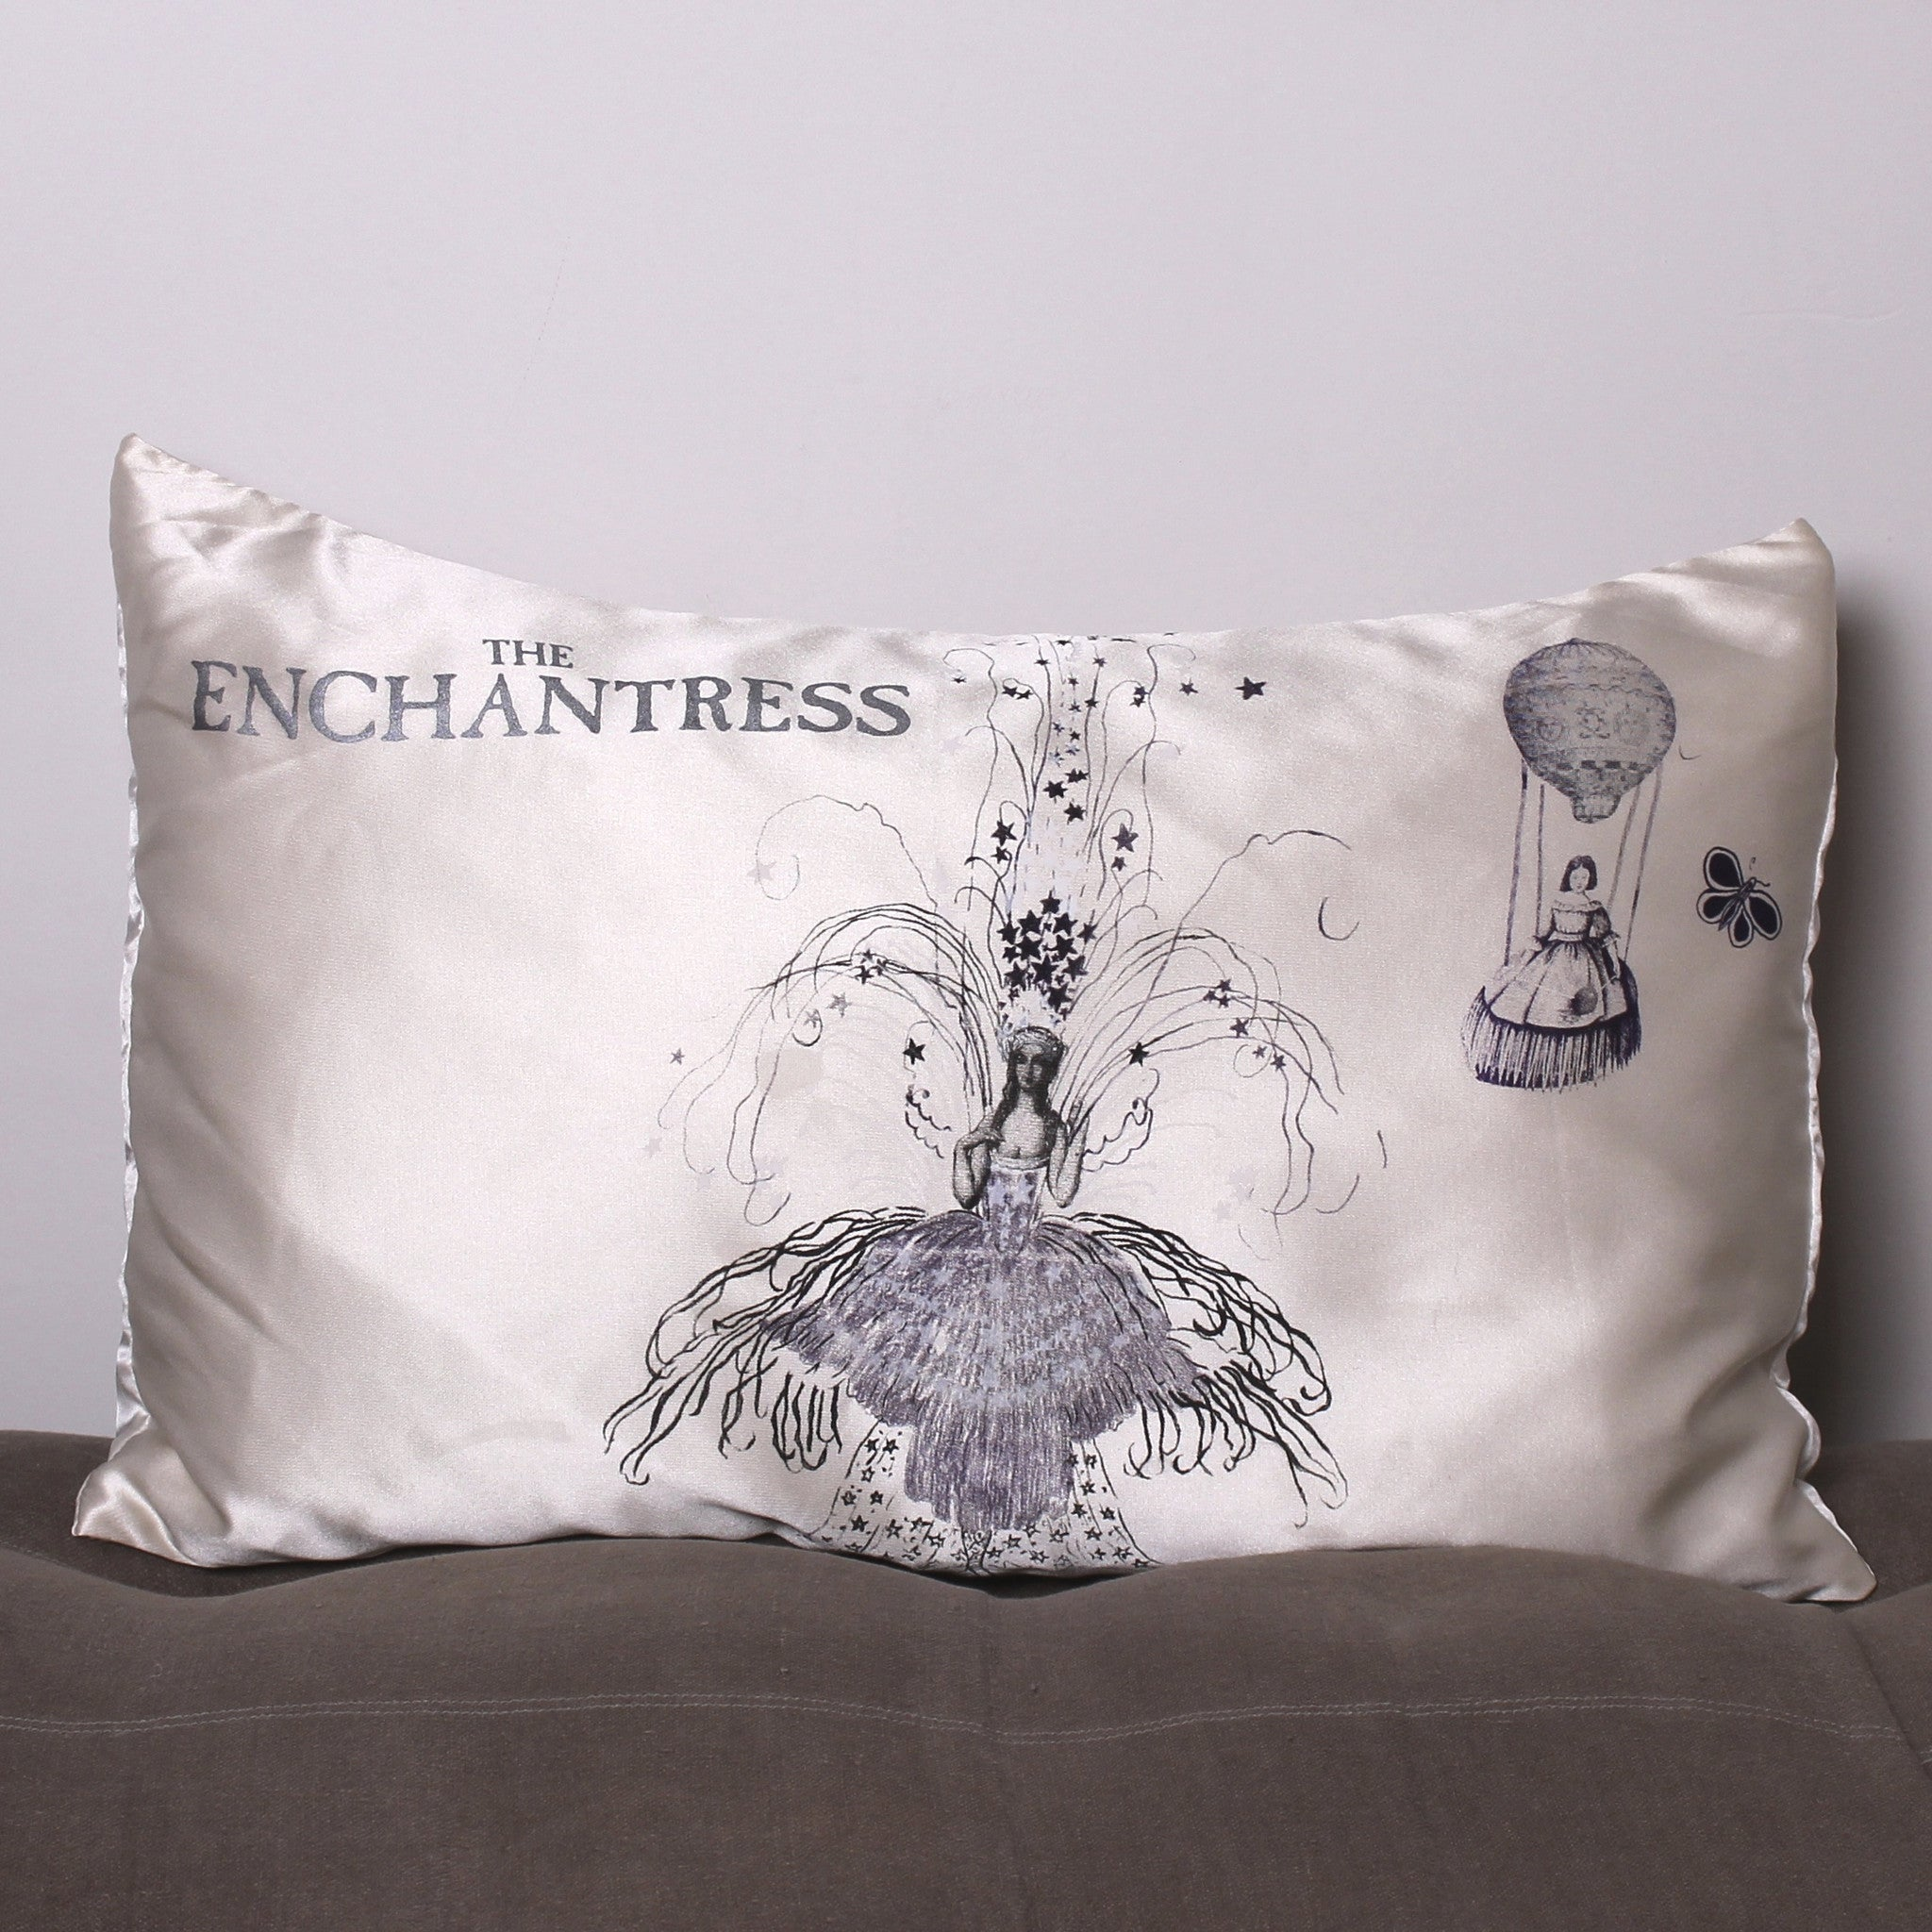 The Enchantress Silk Pillowslip